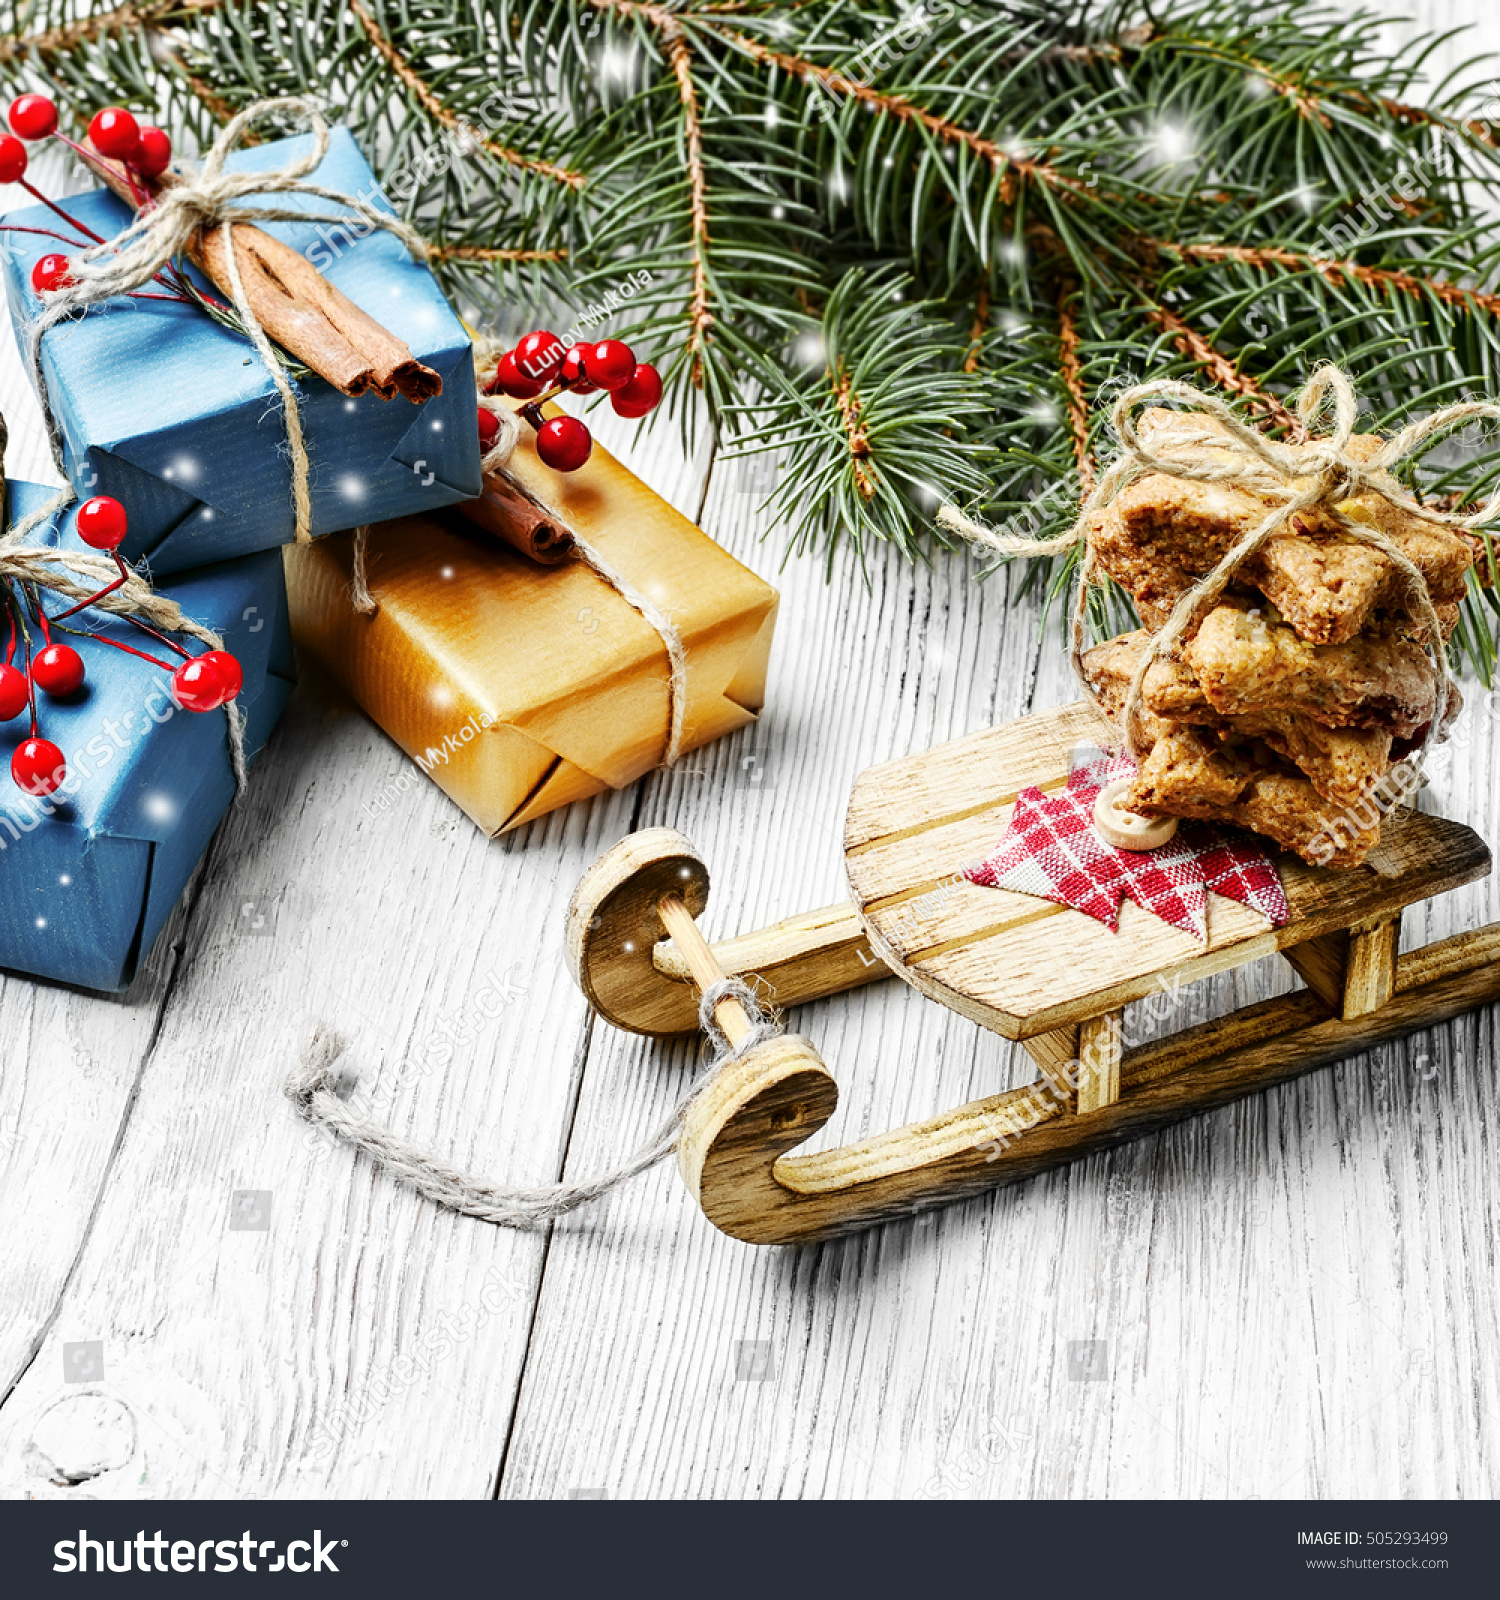 Christmas Card Old Fashioned Christmas Sleigh Stock Photo (Edit Now ...